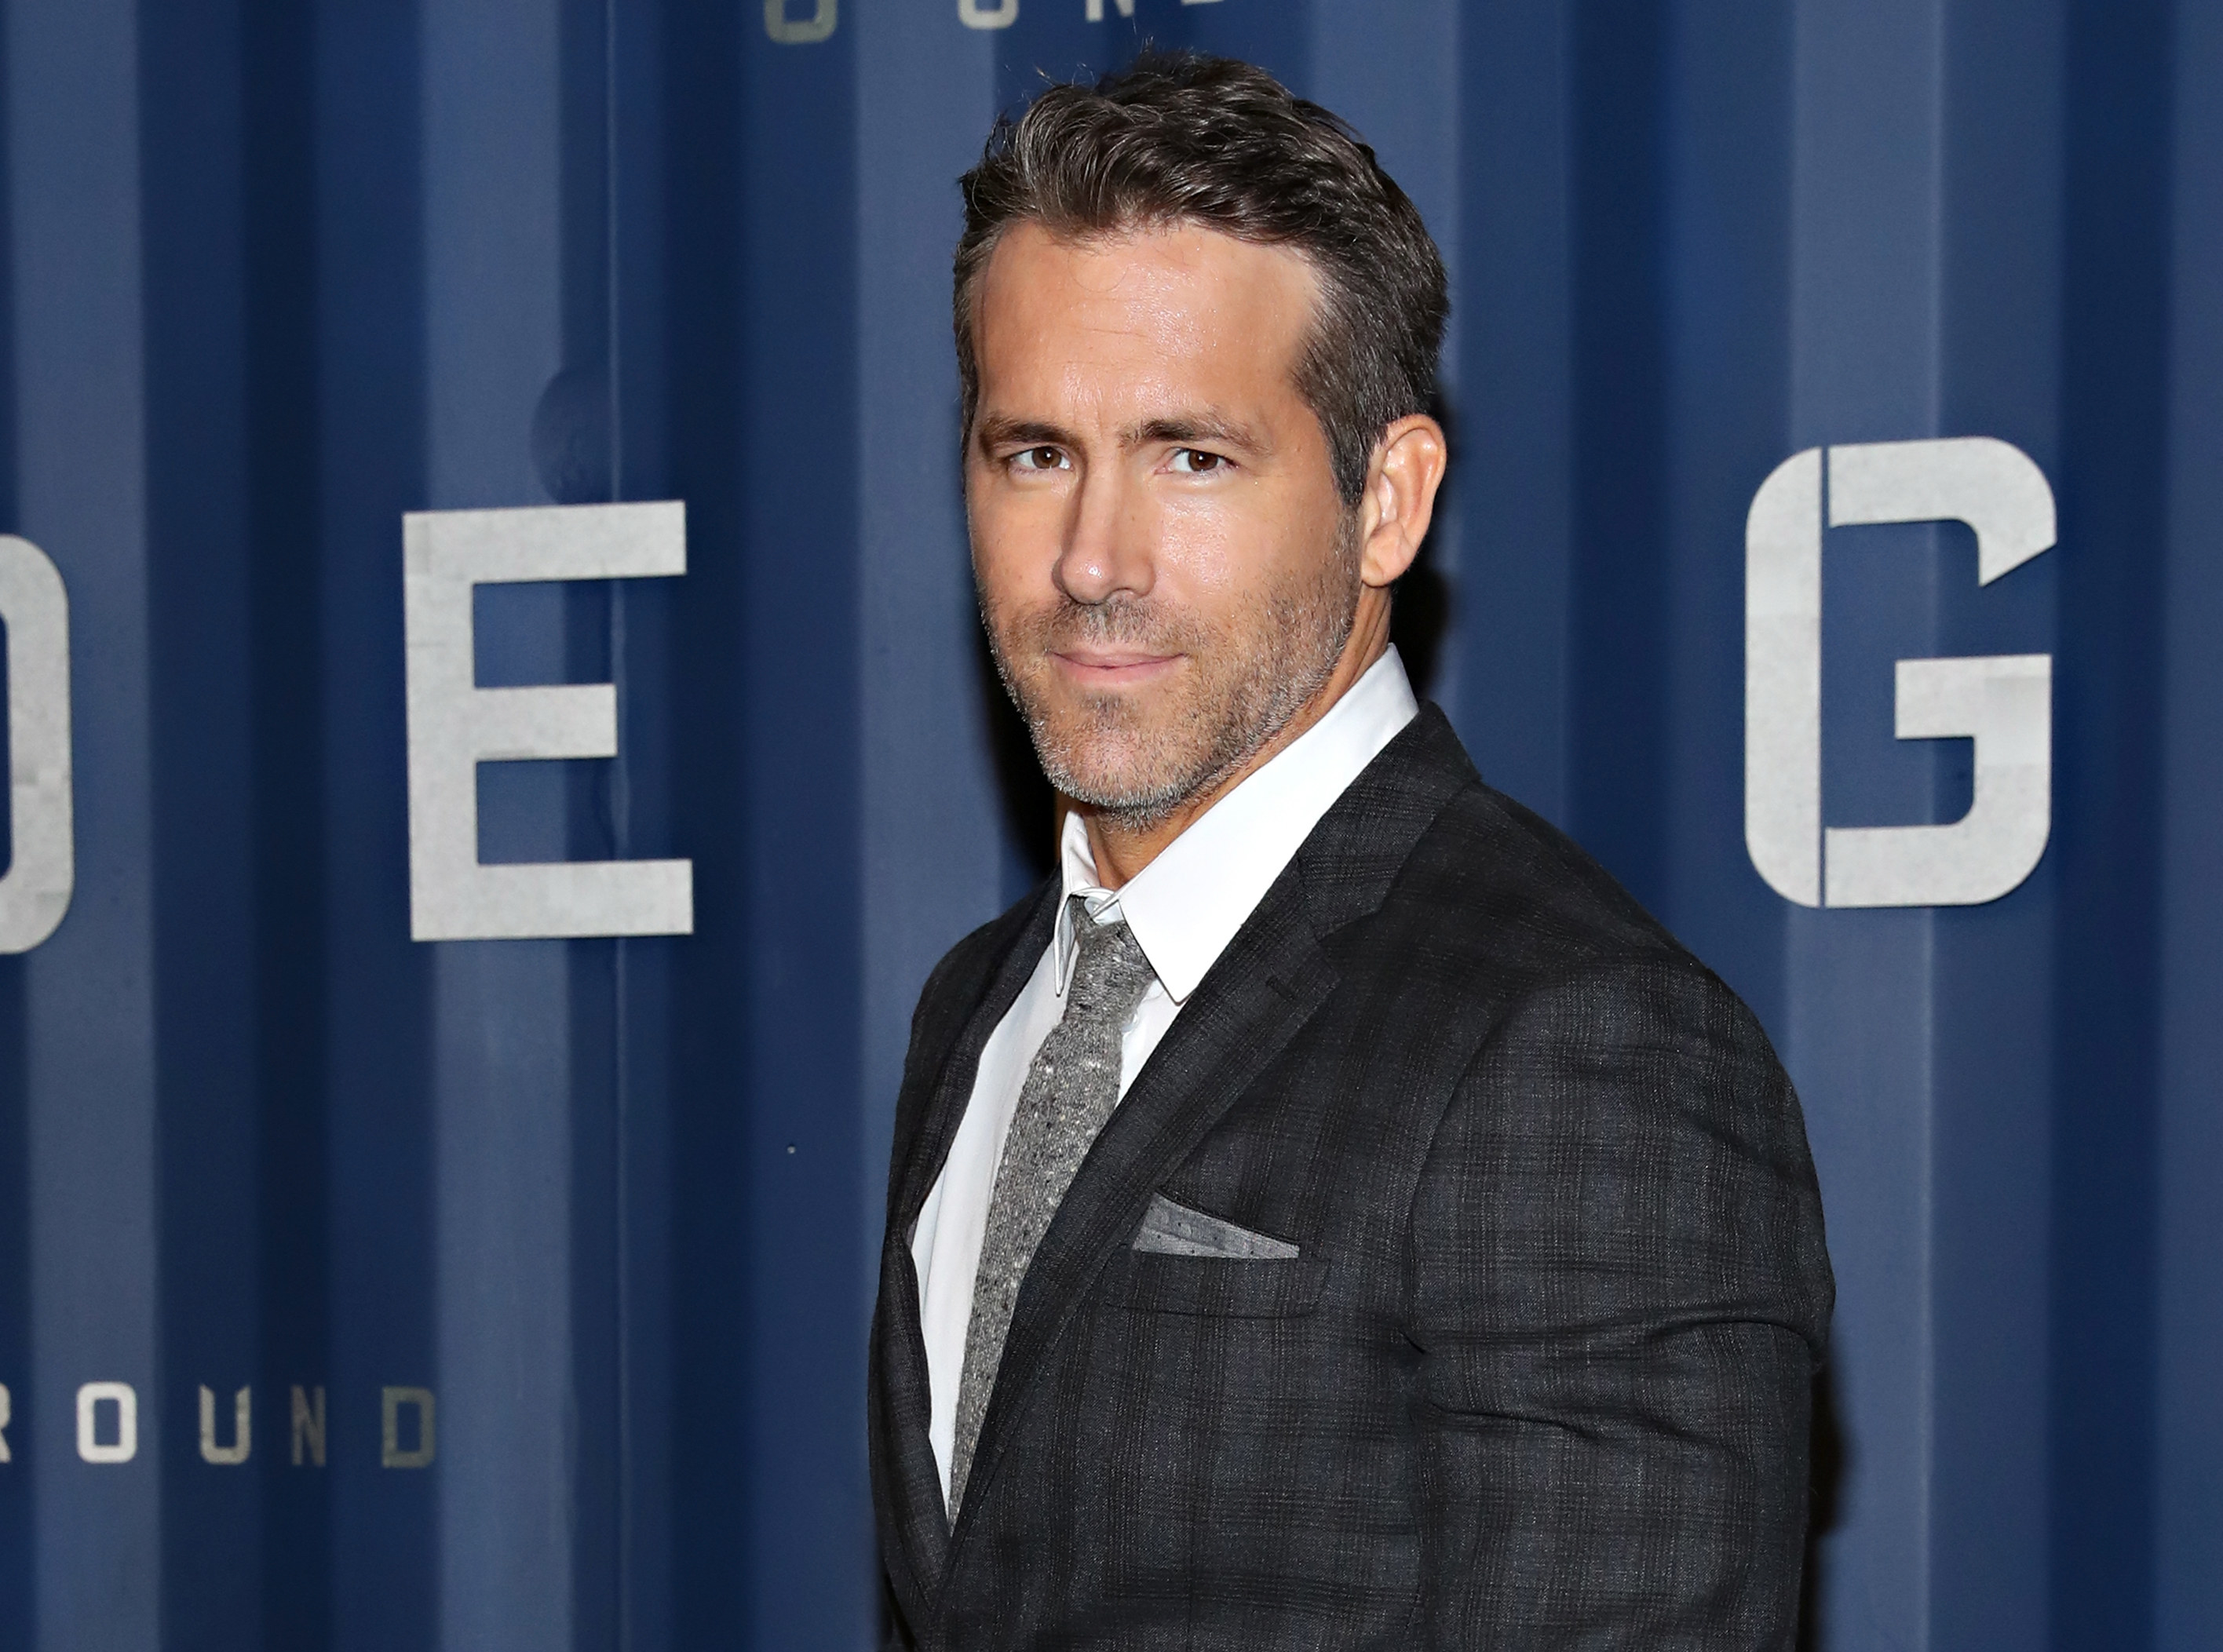 Ryan Reynolds in a suit and tie